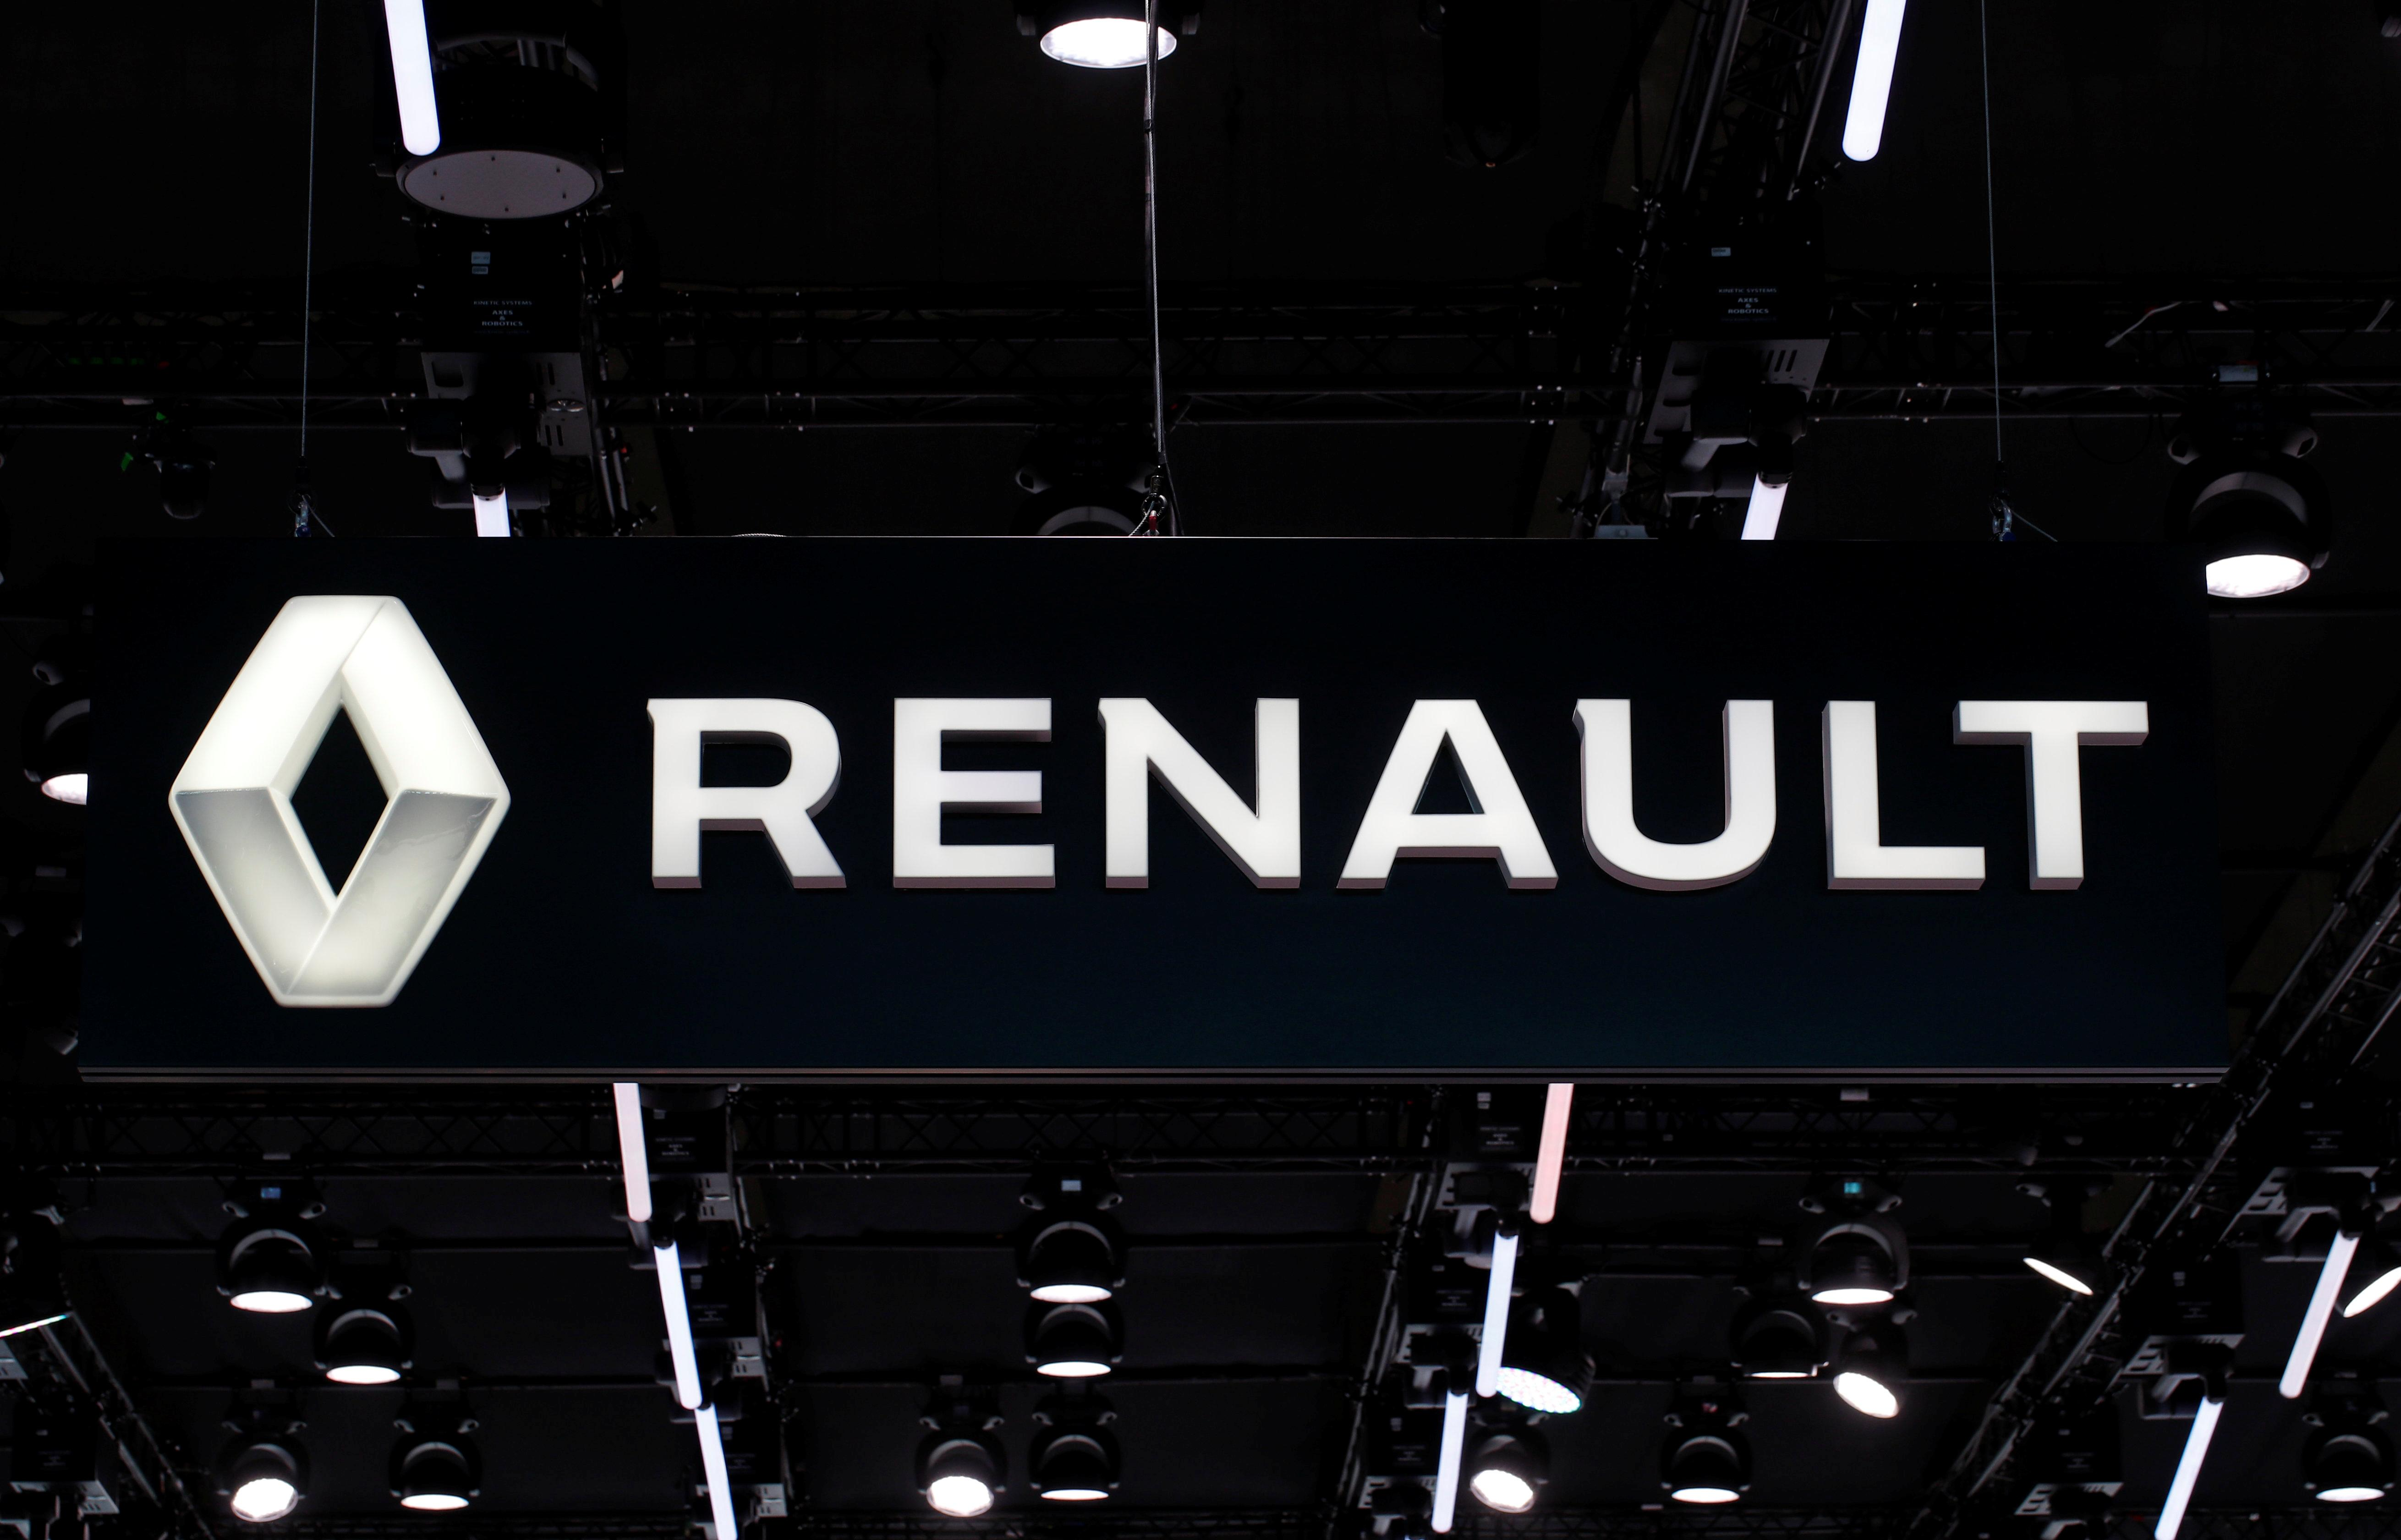 Renault board to discuss interim replacement for Ghosn: sources